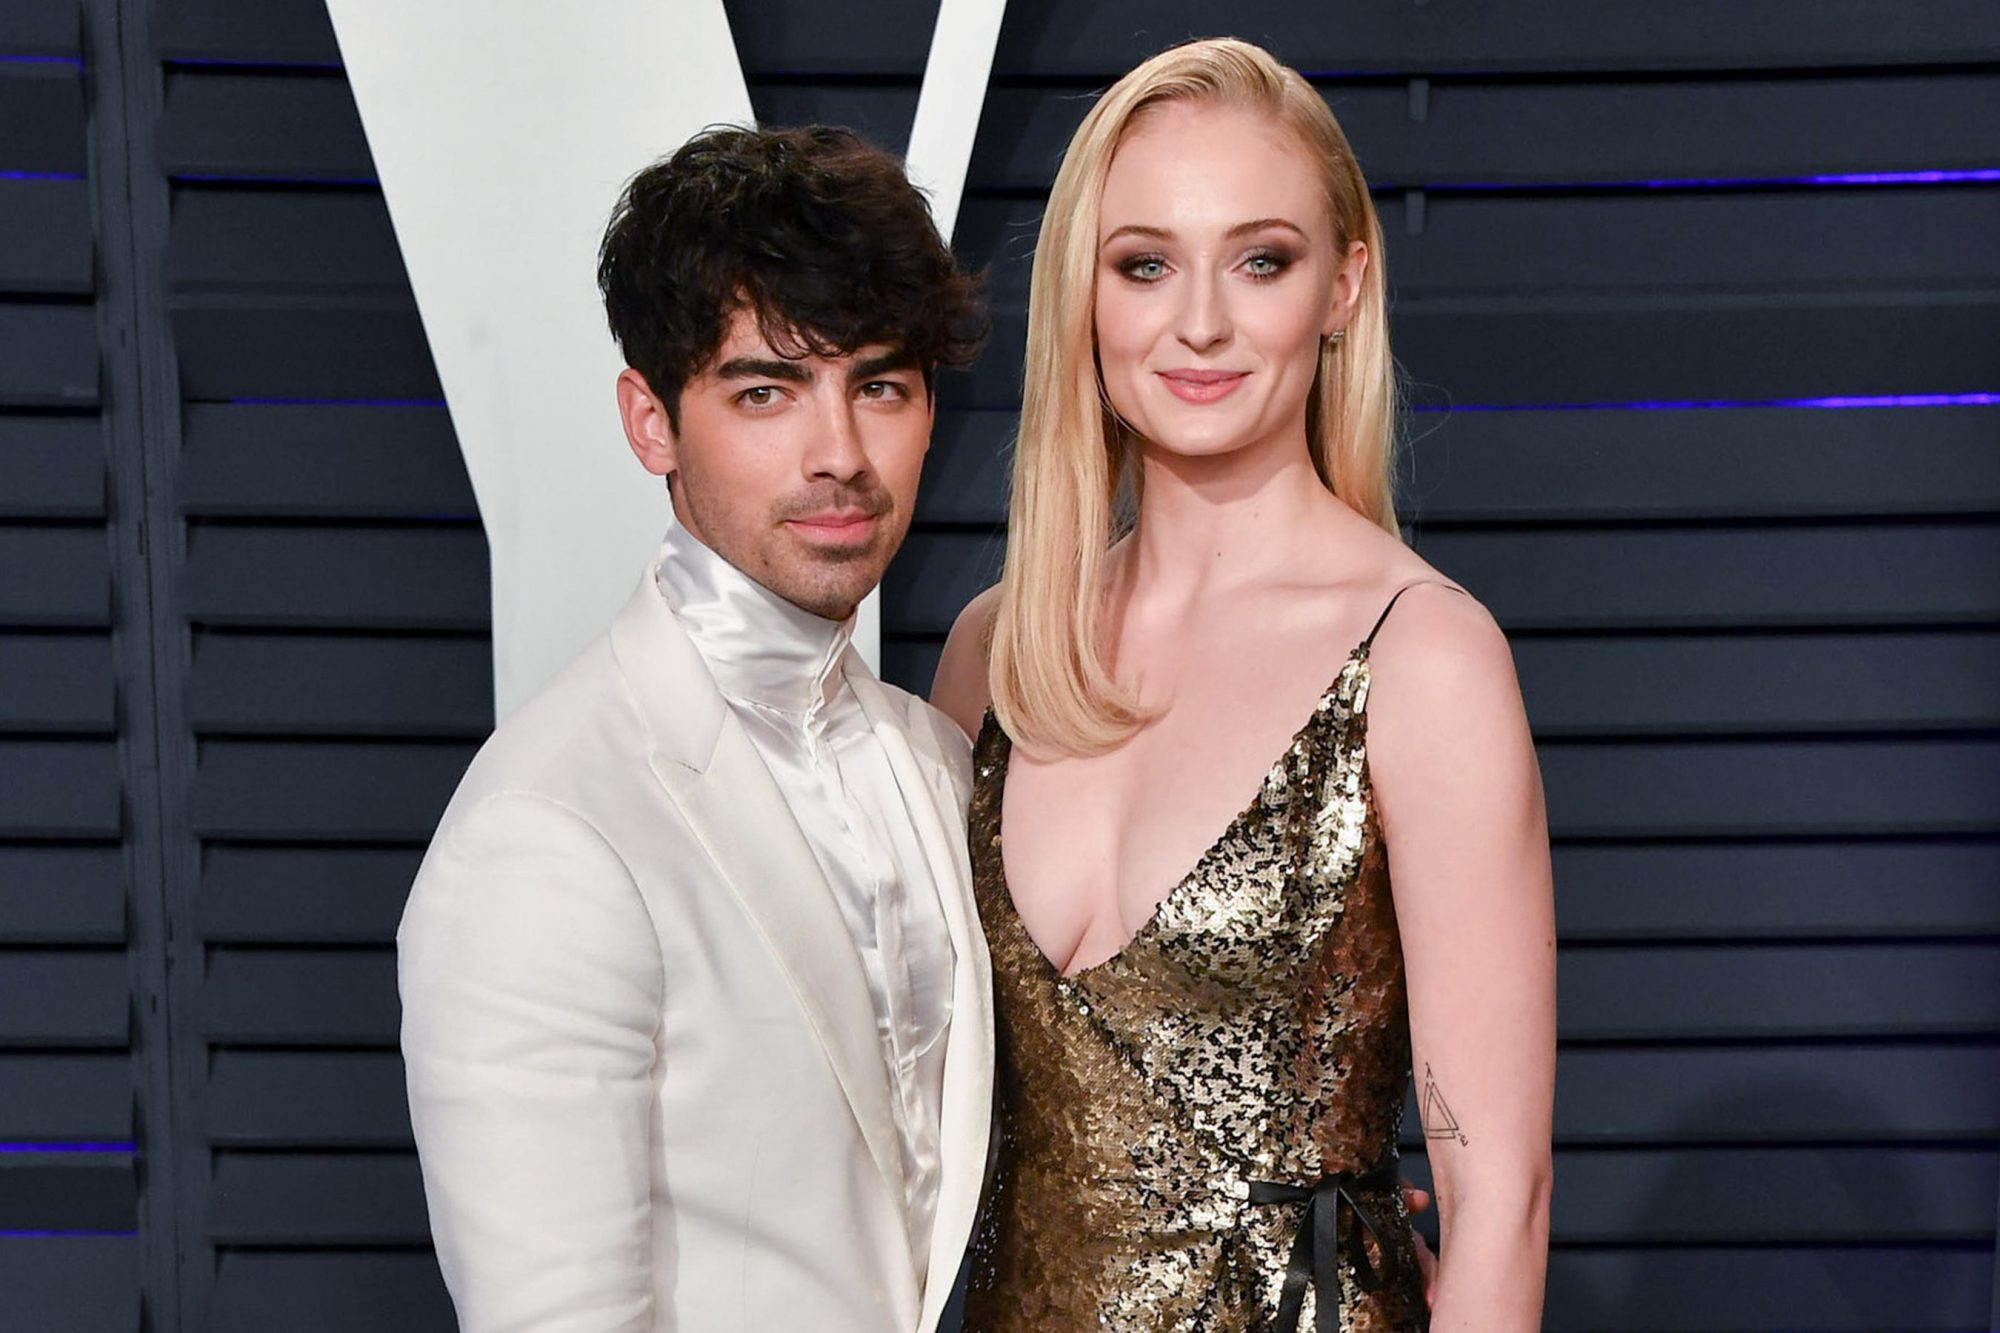 BEVERLY HILLS, CALIFORNIA - FEBRUARY 24: Joe Jonas and Sophie Turner attend the 2019 Vanity Fair Oscar Party hosted by Radhika Jones at Wallis Annenberg Center for the Performing Arts on February 24, 2019 in Beverly Hills, California. (Photo by George Pimentel/Getty Images)